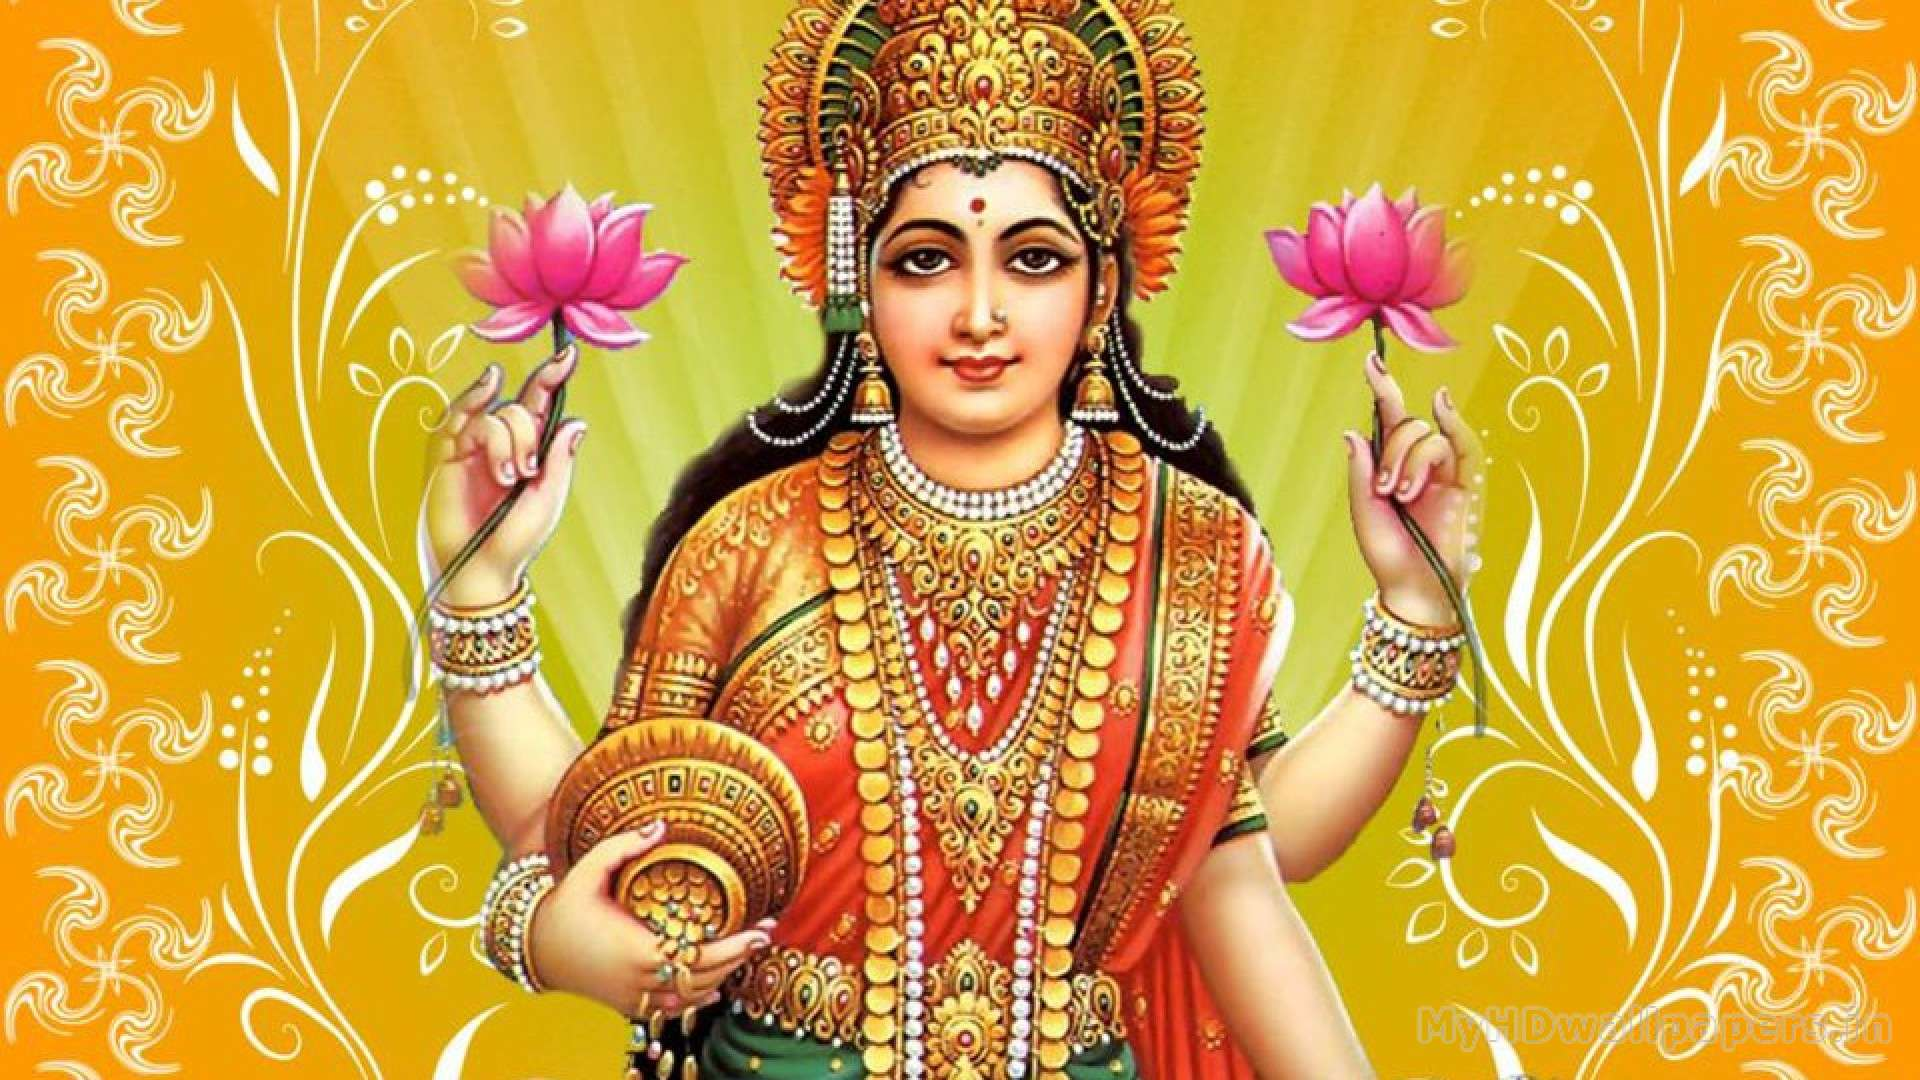 god lakshmi wallpaper desktop background in hd widescreen resolution 1920x1080